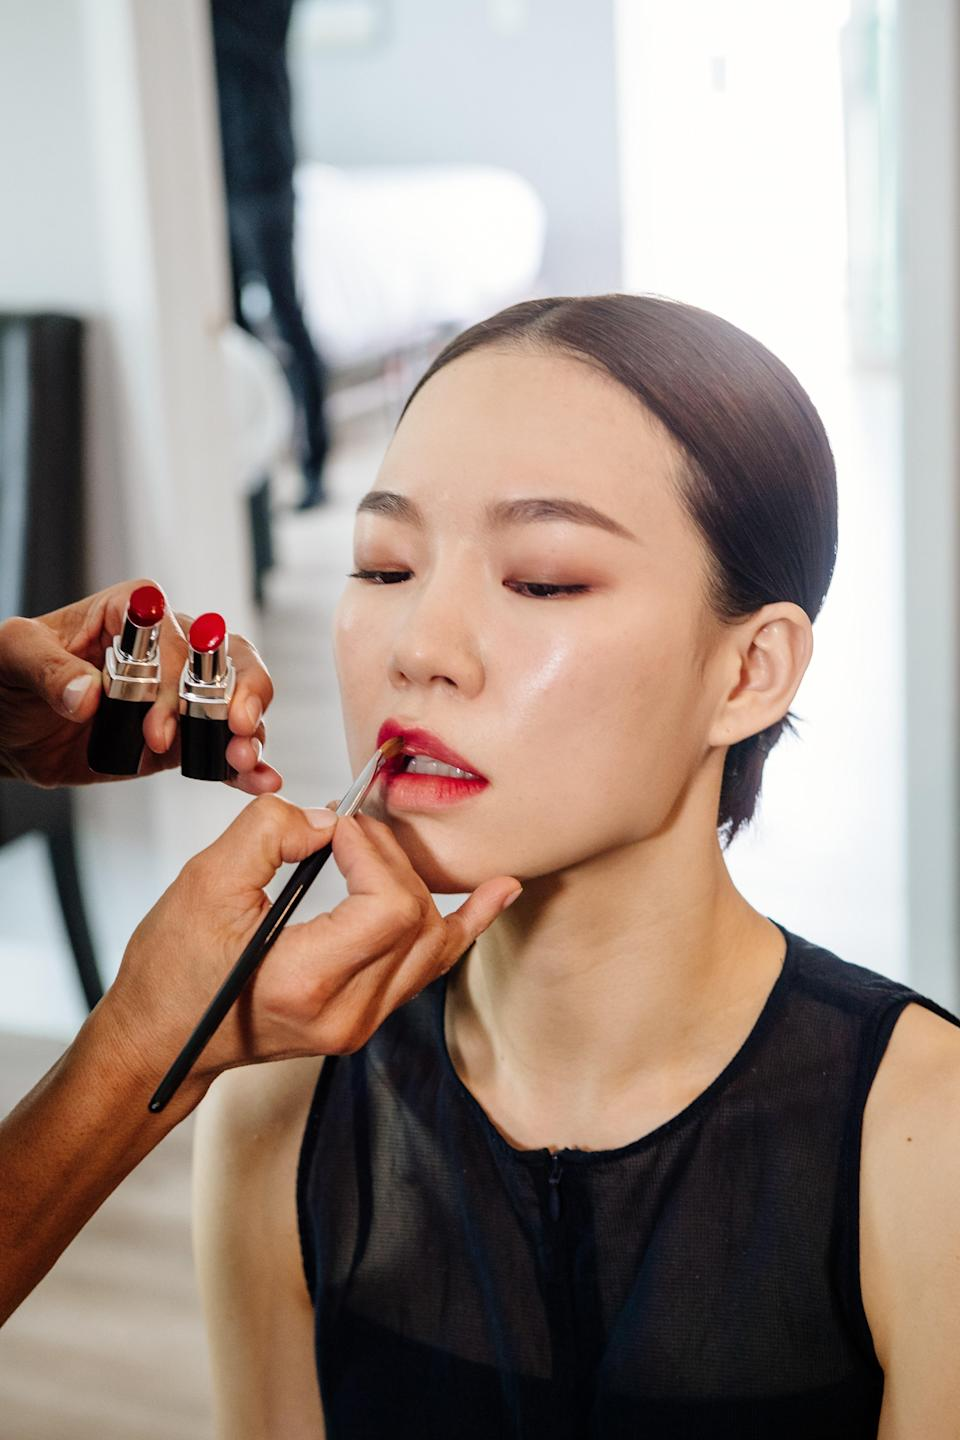 """""""I gave her skin a glassy, modern glow with a two-toned ombré lip keeping it extra fresh,"""" explains Bua. Han's crimson pout was achieved with a swipe of <a href=""""https://www.chanel.com/us/makeup/p/172118/rouge-coco-bloom-hydrating-plumping-intense-shine-lip-colour/"""" rel=""""nofollow noopener"""" target=""""_blank"""" data-ylk=""""slk:Chanel Rouge Coco Bloom in Magic"""" class=""""link rapid-noclick-resp"""">Chanel Rouge Coco Bloom in Magic</a> over the whole mouth, with deeper tone Vitalité layered on the center and slightly feathered out """"to keep the edges soft,"""" she says."""